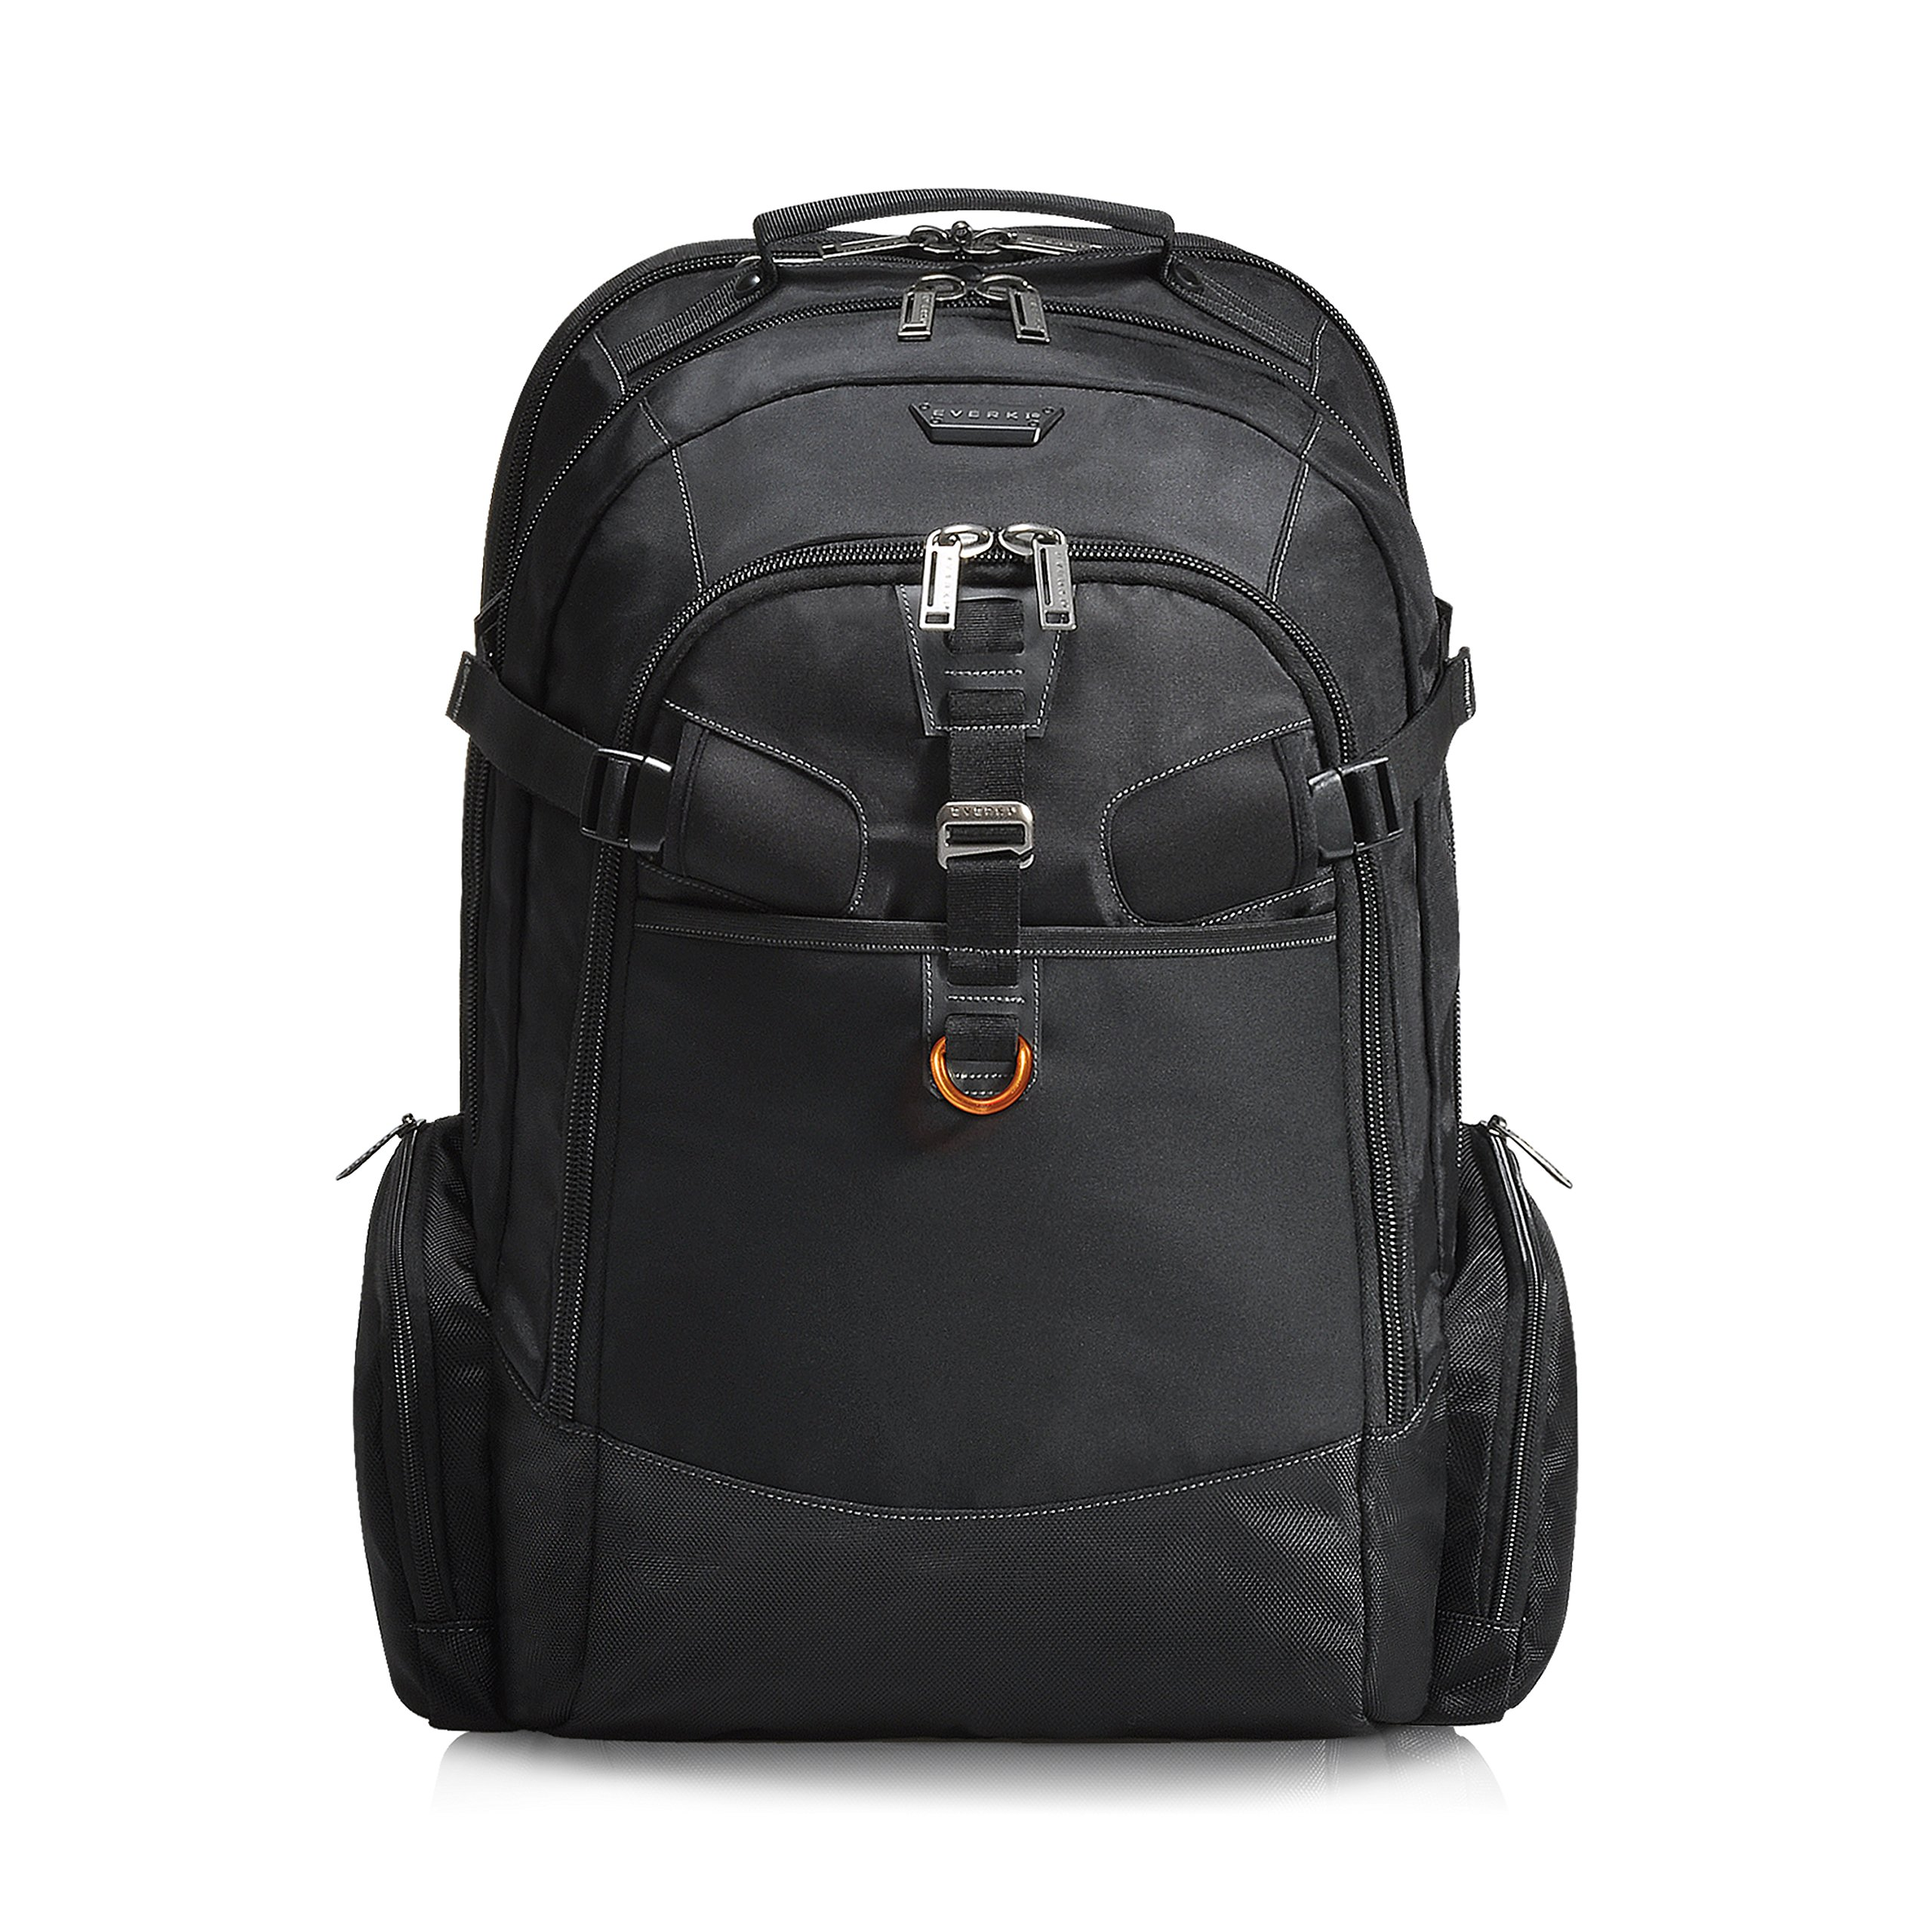 Good Laptop Backpacks For College- Fenix Toulouse Handball c7d420684cff9